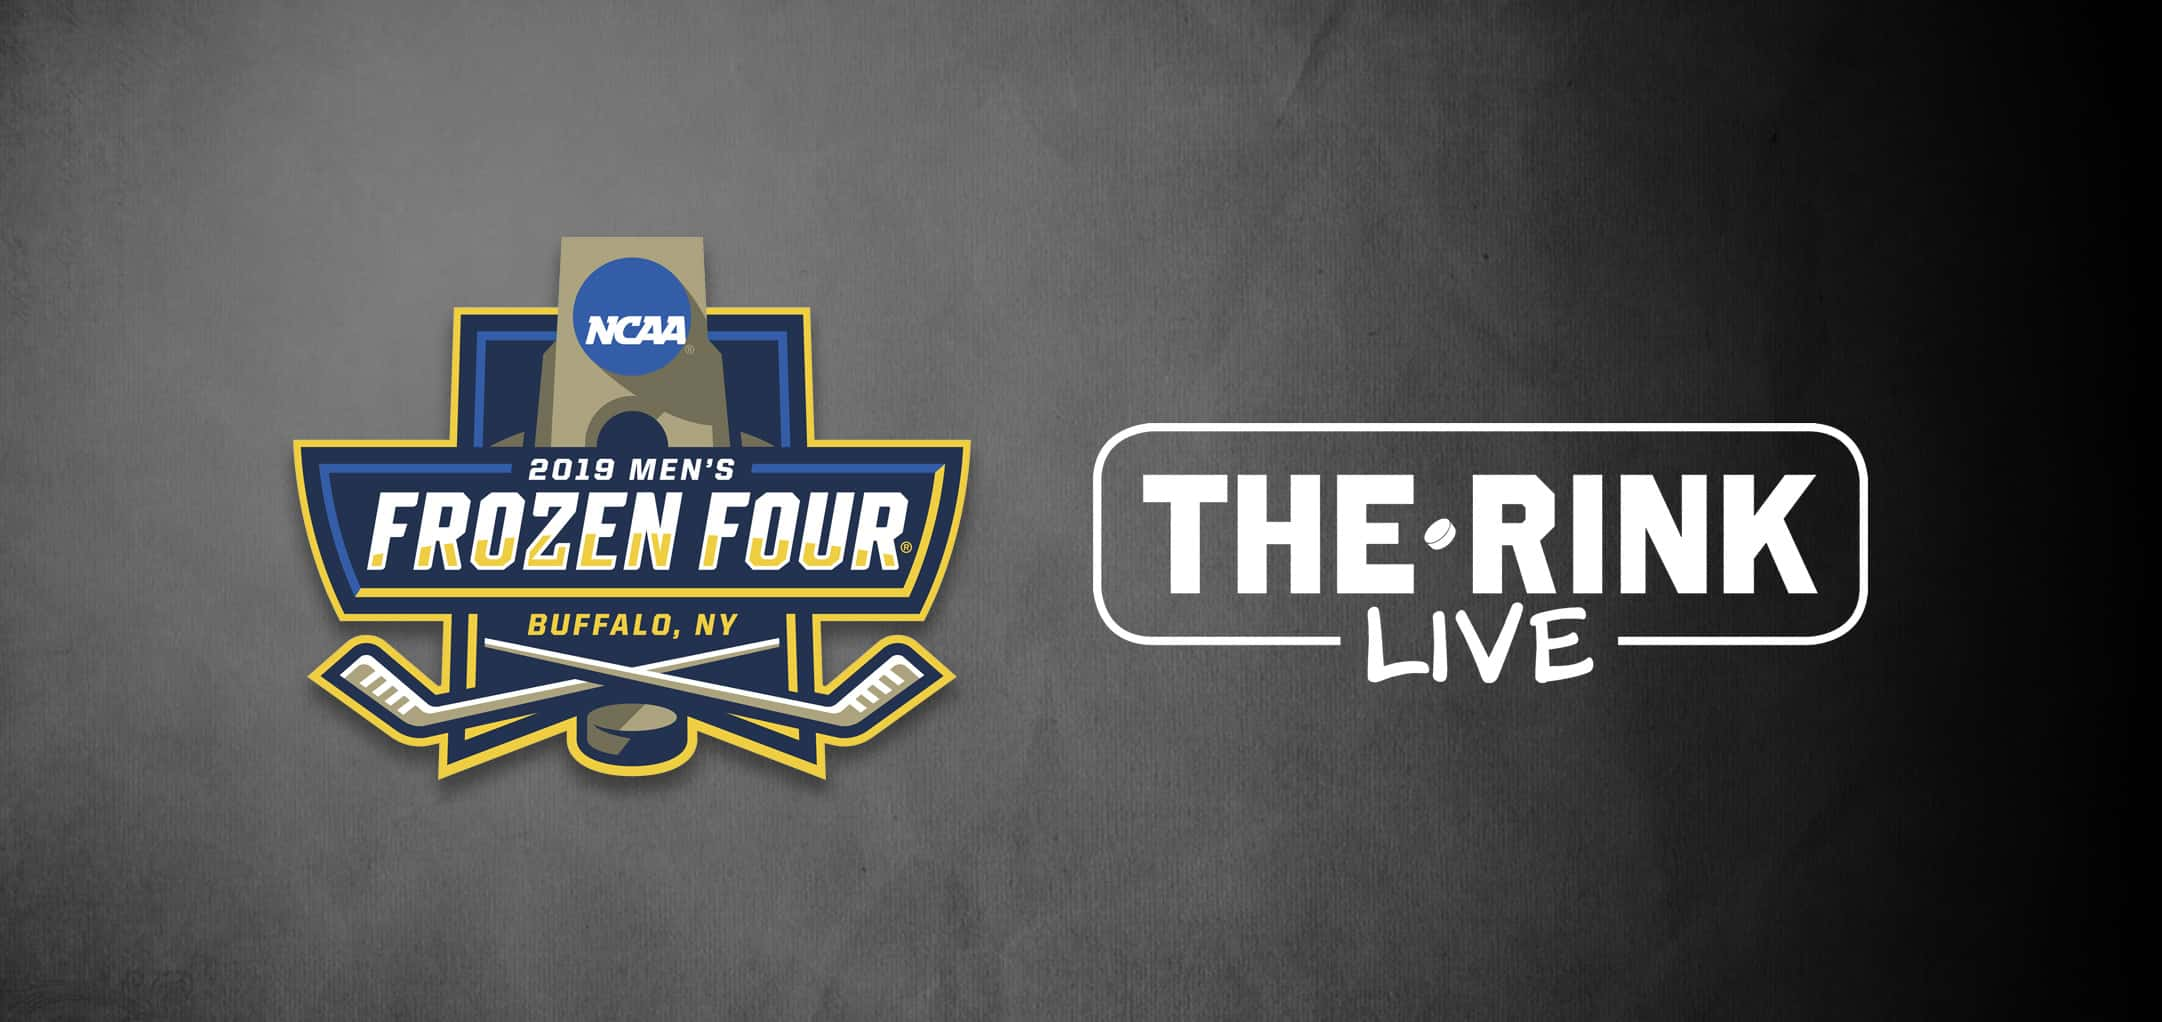 A Fan S Guide To The 2019 Frozen Four Tournament The Rink Live